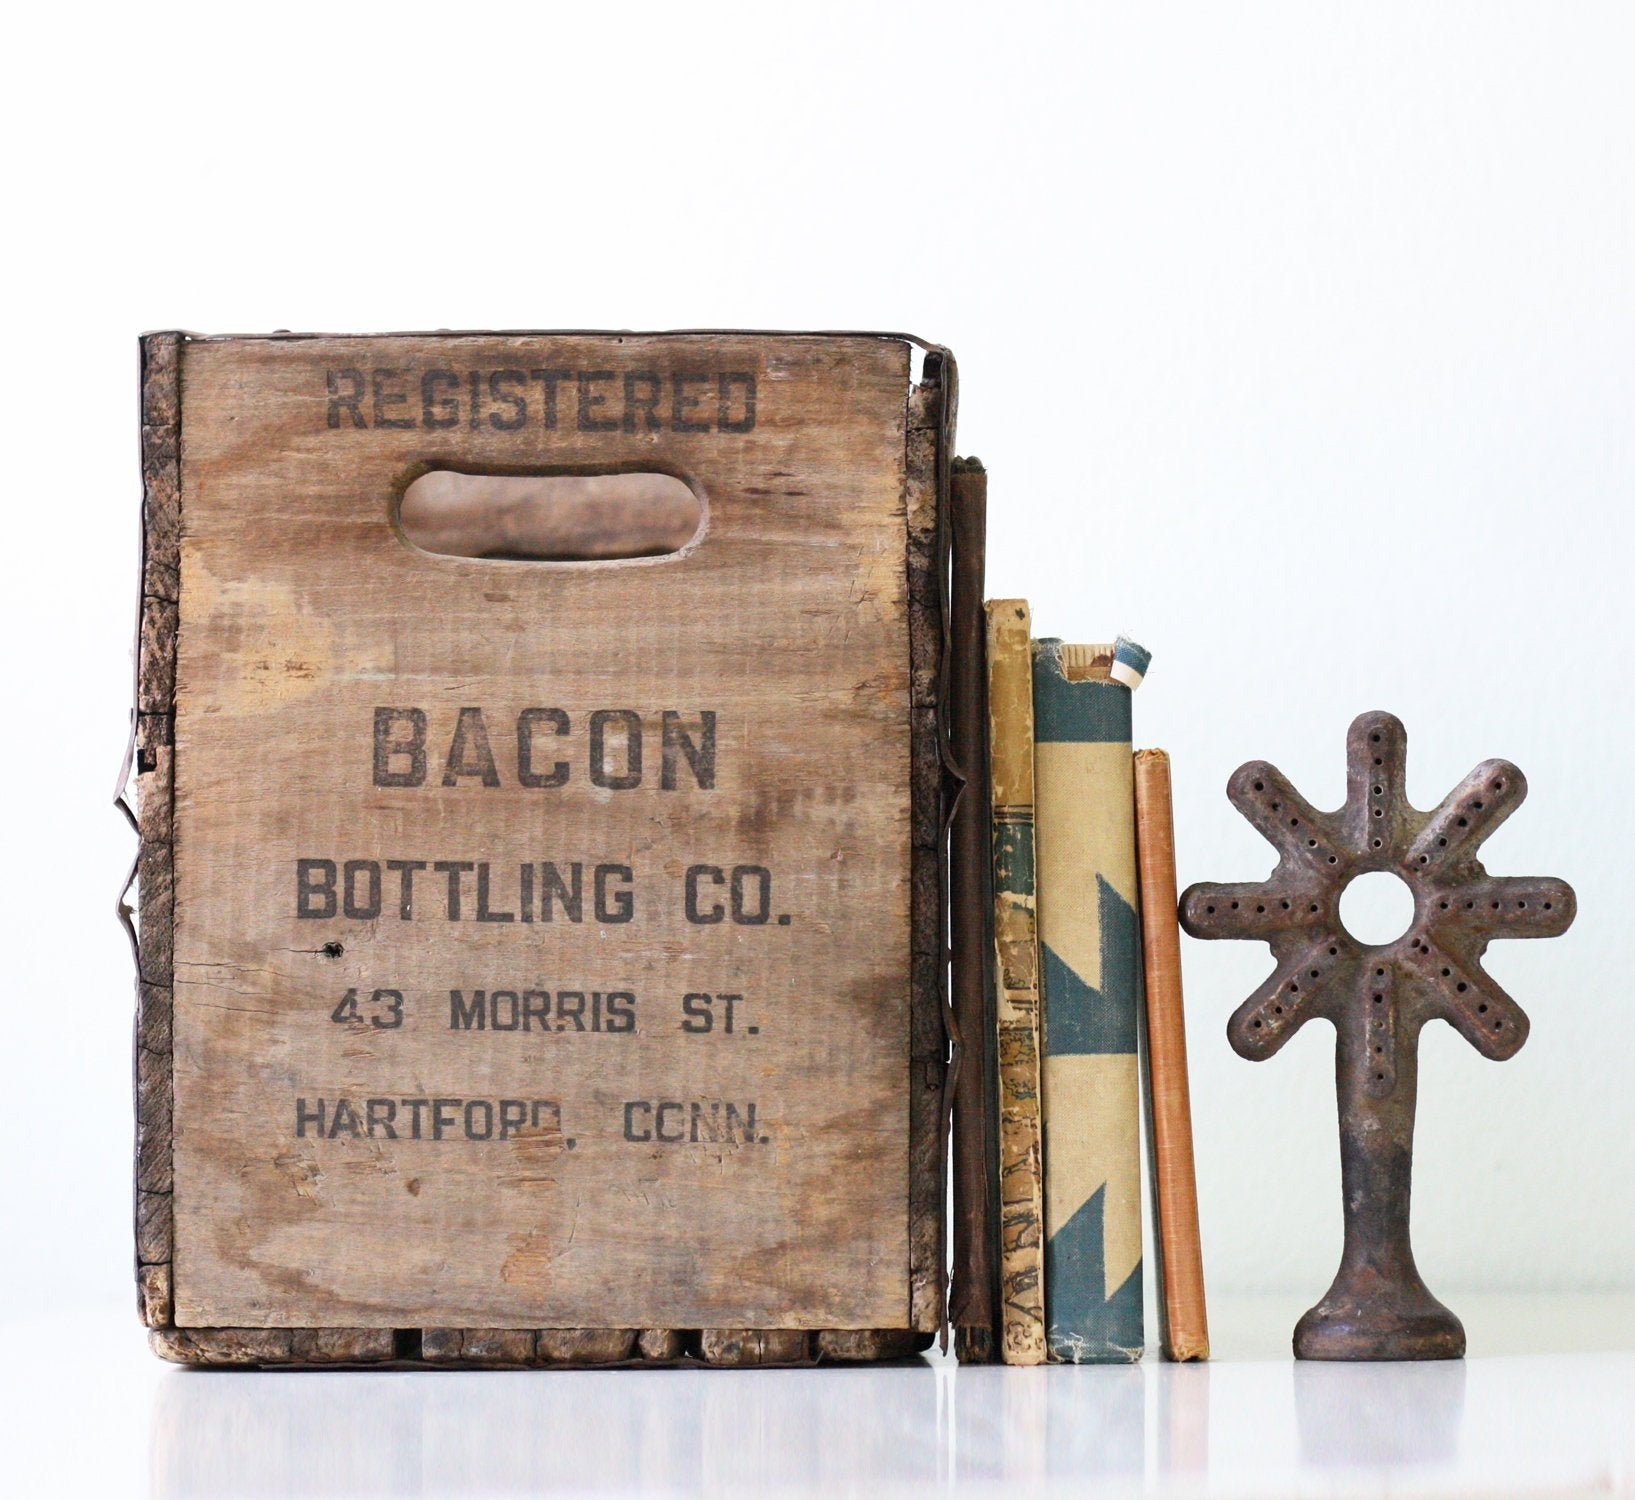 Vintage Bacon Bottling Co Crate, Hartford Connecticut  Ah, I really wish I could afford this!